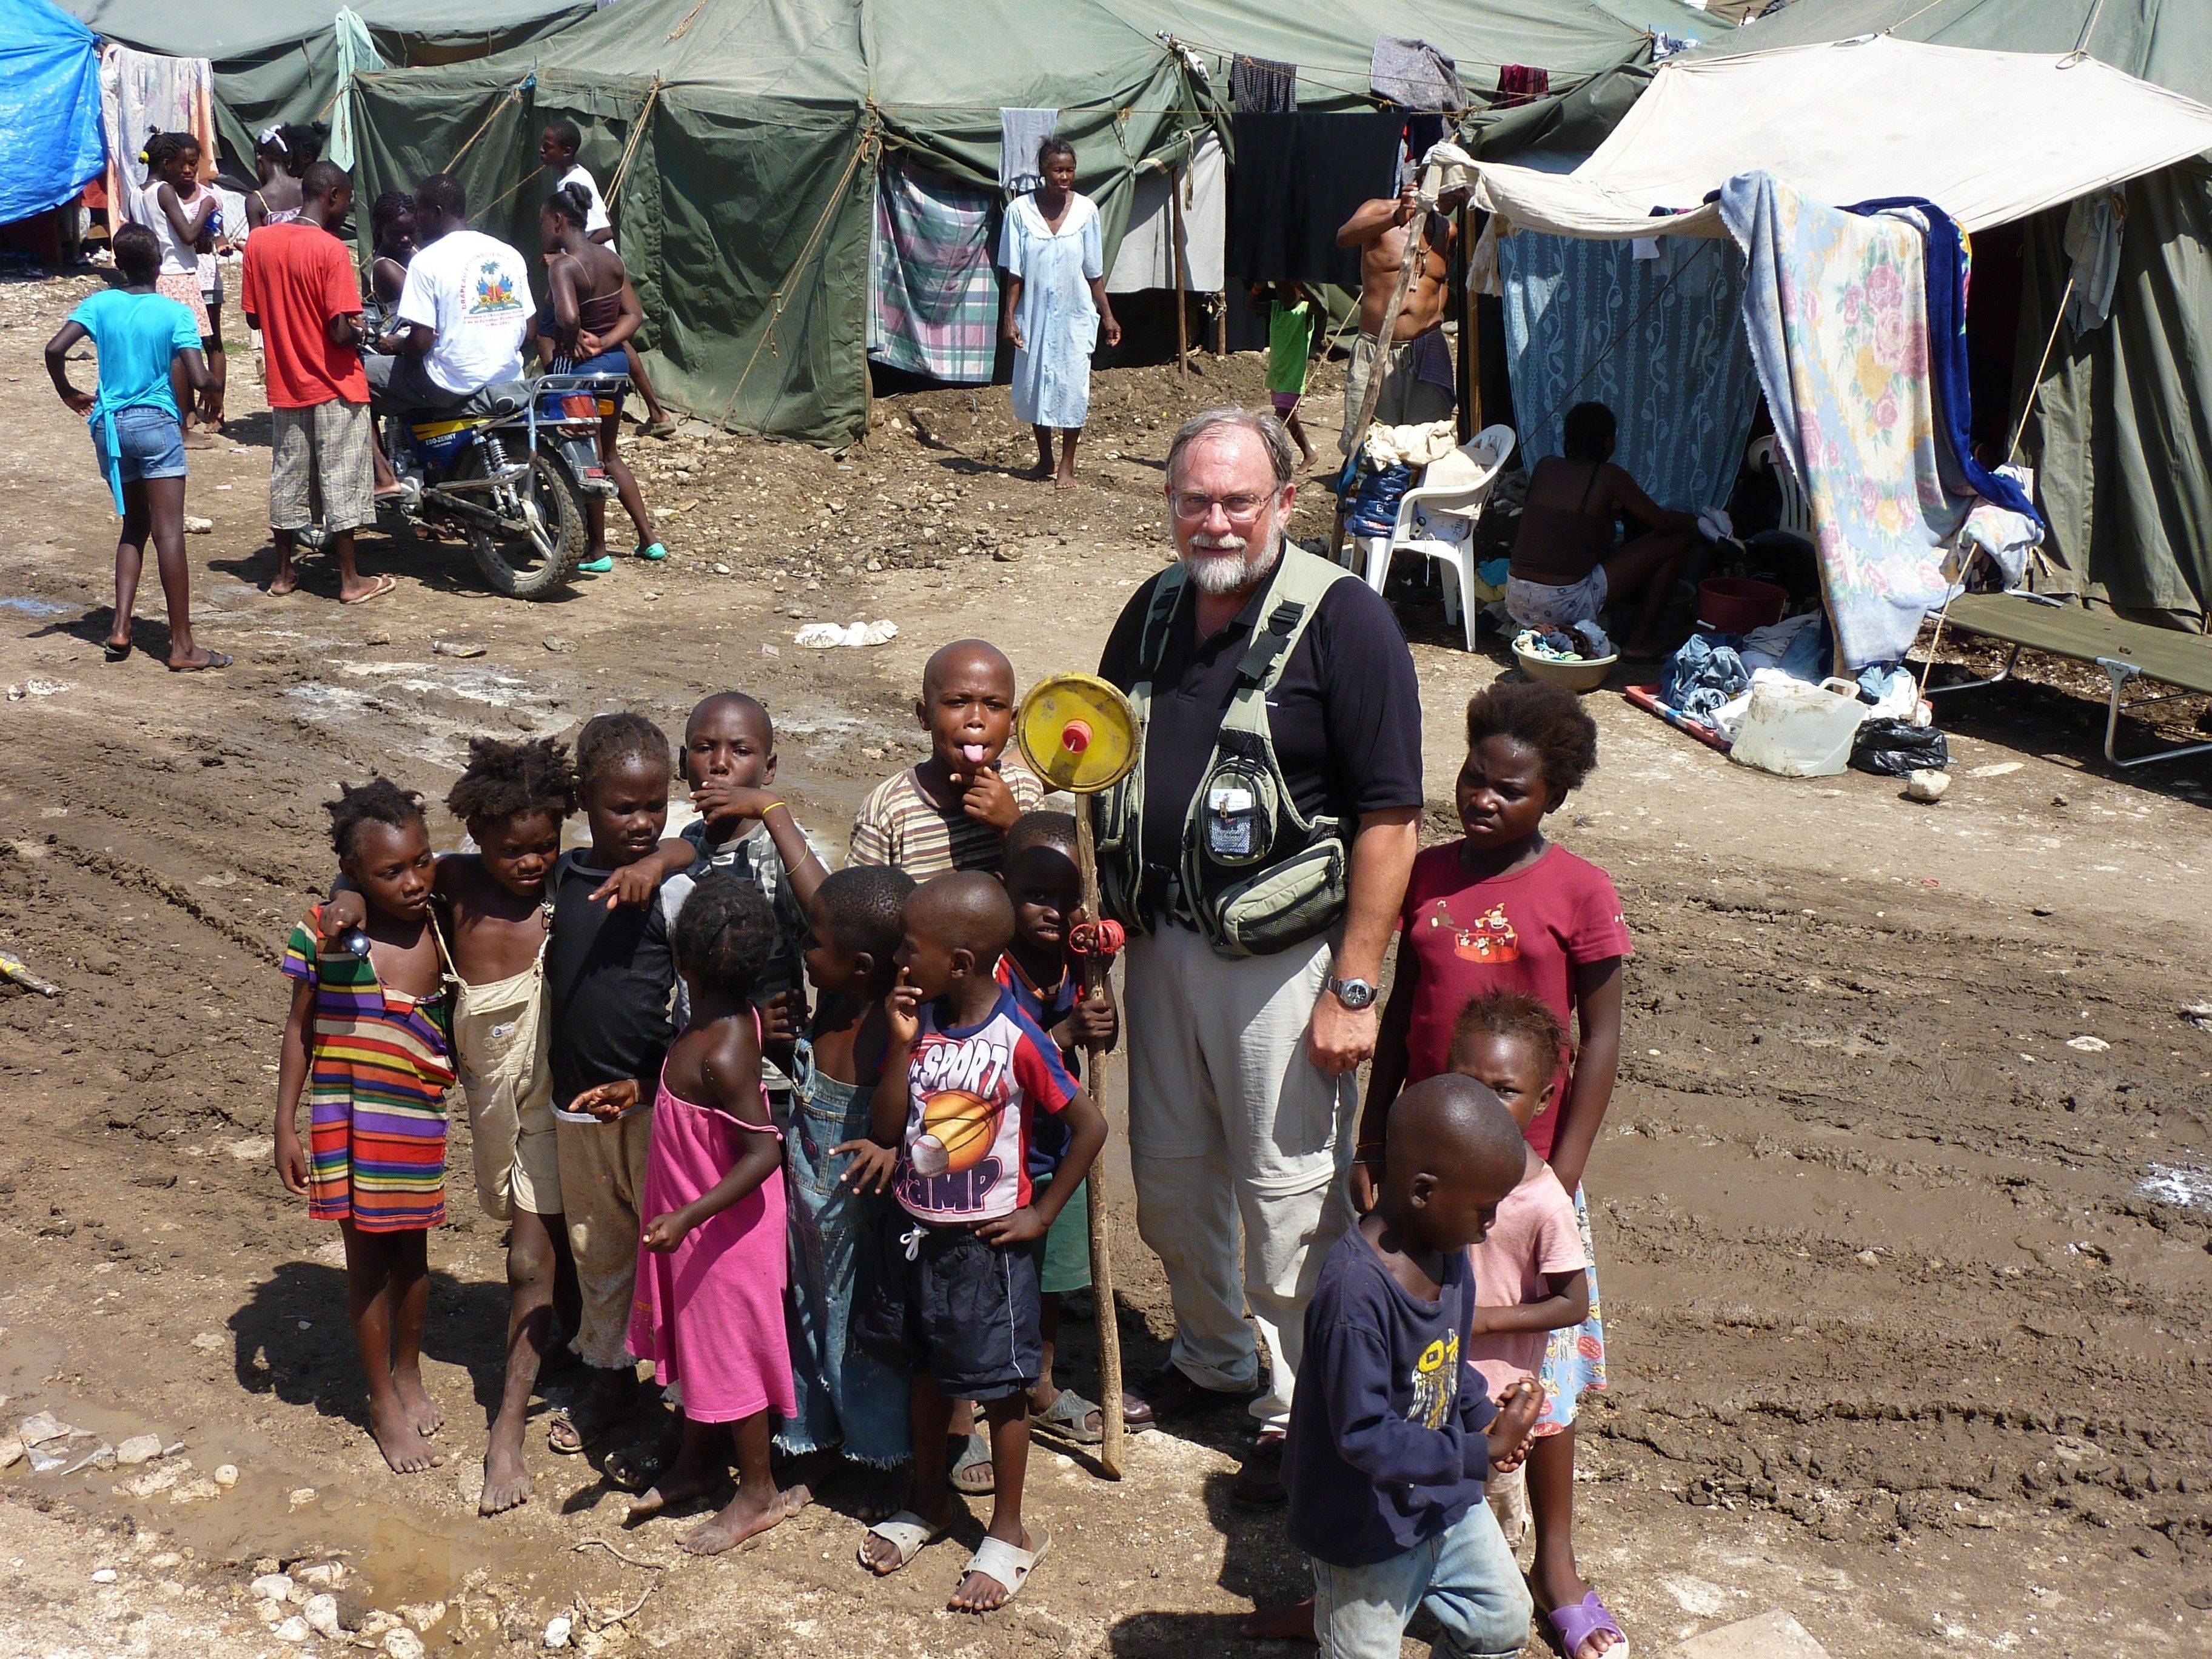 Tim Hetzner, of Palatine, president of Lutheran Church Charities in Addison, poses with some of the children he met during a trip to Haiti this summer.